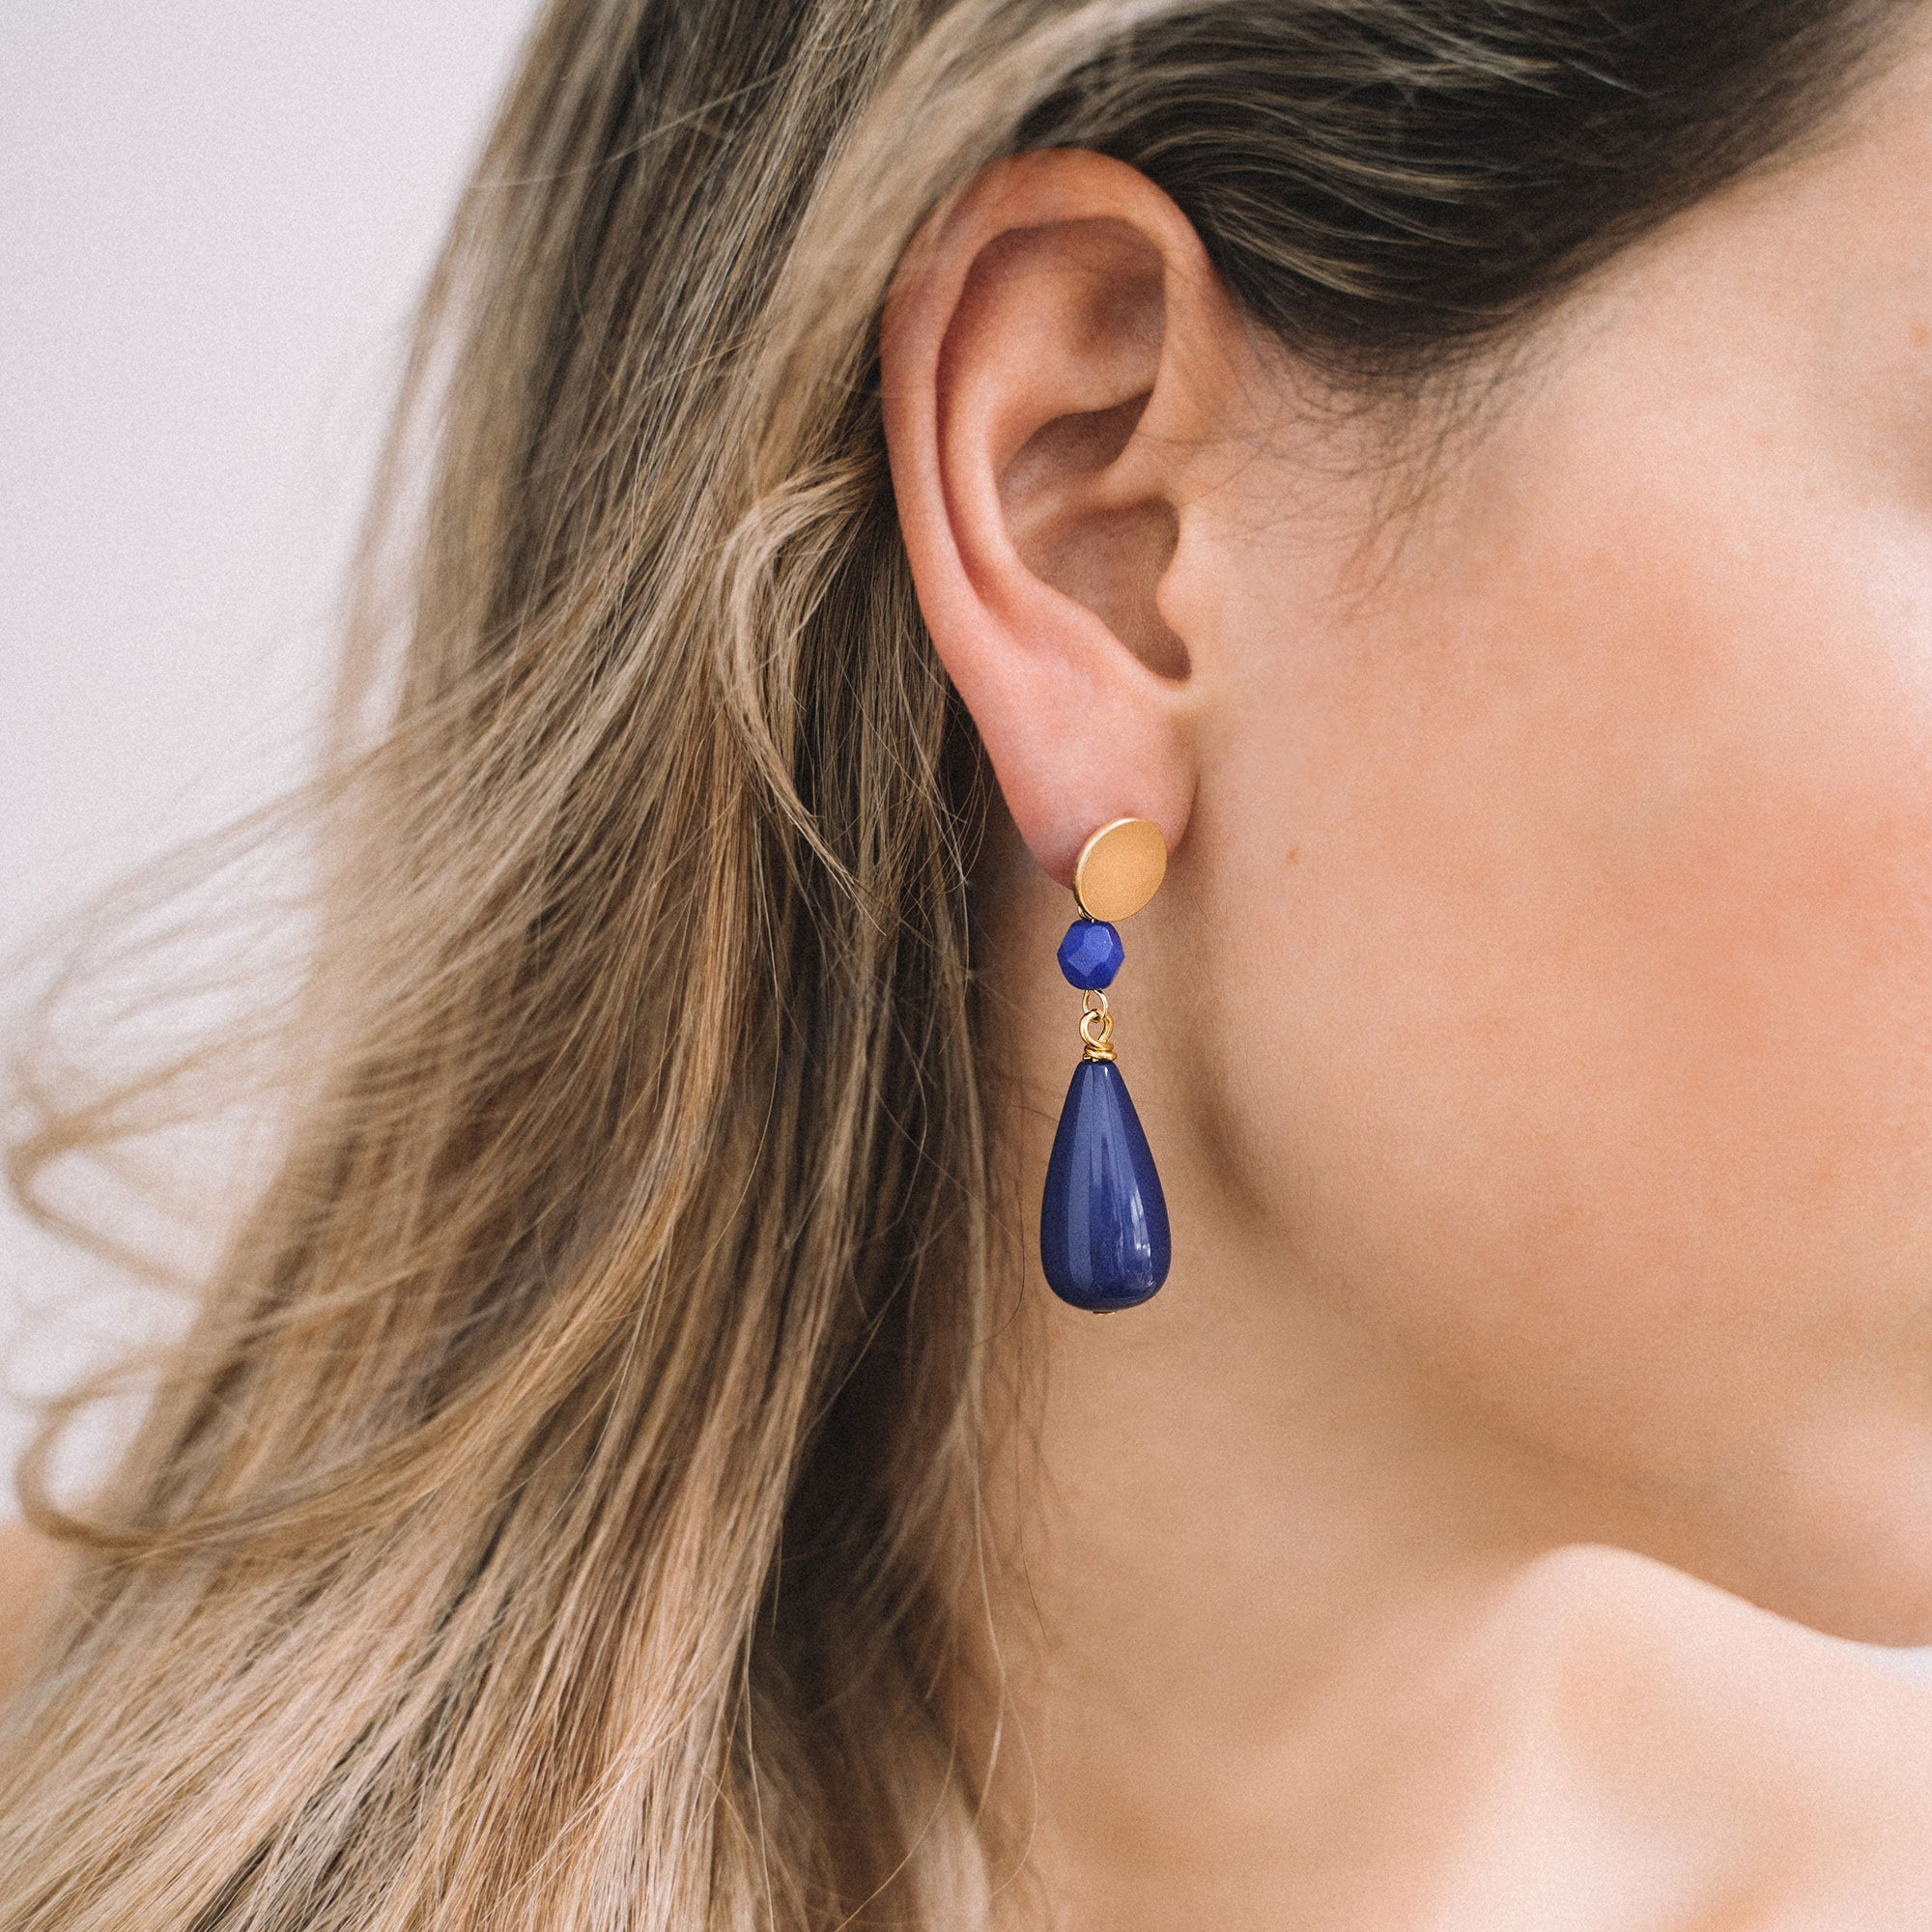 Deep Blue earrings (SD1646)